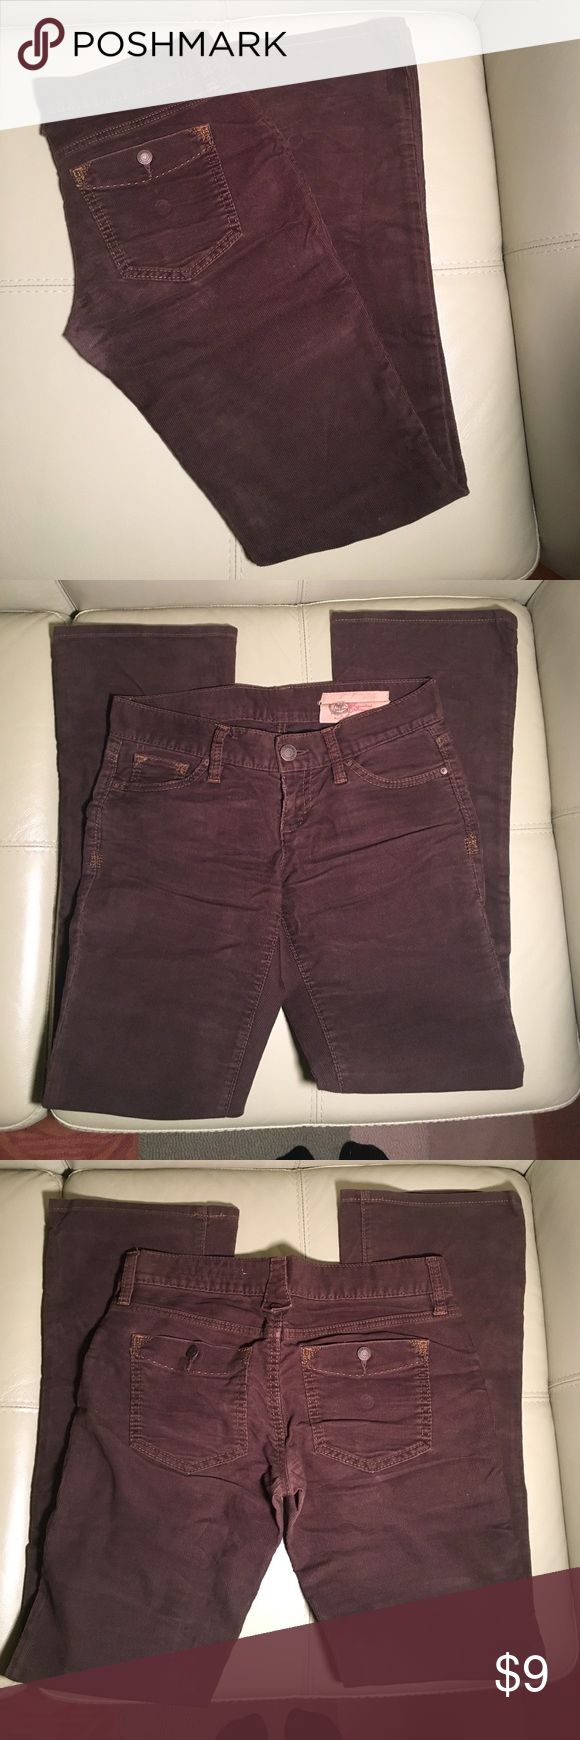 """1969 GAP Limited Edition Brown Cords - Sz O Reg 1969 GAP Limited Edition Brown Ladies Cords w/Slight Bootcut - Sz 0 Reg  ** WILL combine shipping for multiple purchases **  Fabric:   65% Cotton/33% Polyester/2% Spandex Color:    Brown w/orange top-stitching Inseam: 32"""" Retail:    $98.00 NOTE: these pants are amazing fitting but have some rubbing in between the legs (no hole)  GREAT condition and ready-to-wear; NO rips, tears, stains, or foul stench.  Comes from my 100% smoke and pet FREE…"""